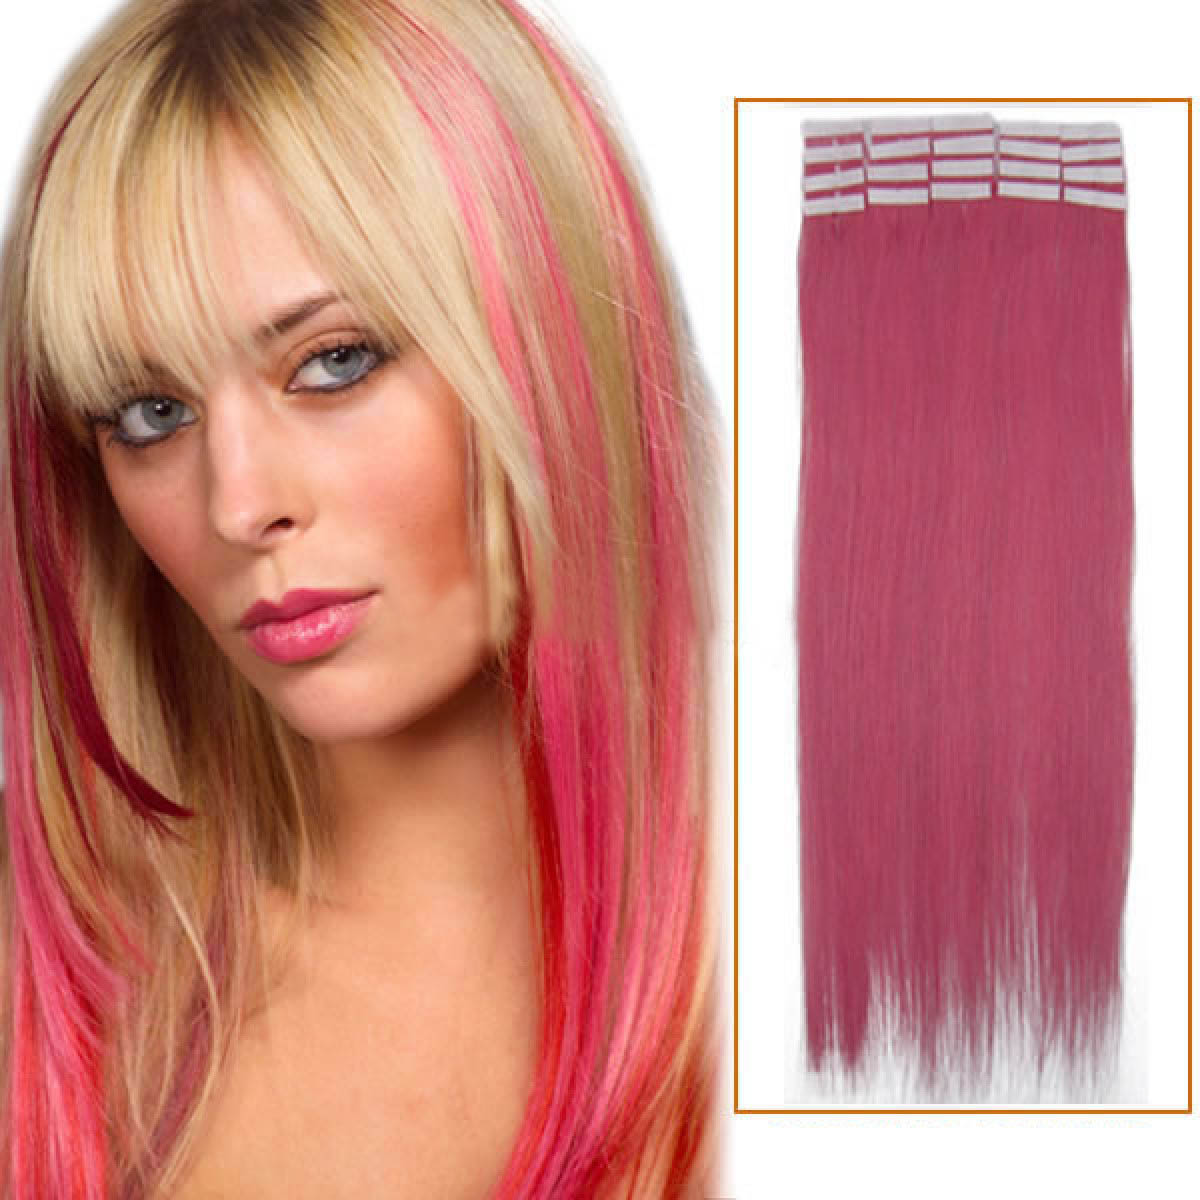 Inch pink tape in human hair extensions 20pcs 24 inch pink tape in human hair extensions 20pcs pmusecretfo Image collections